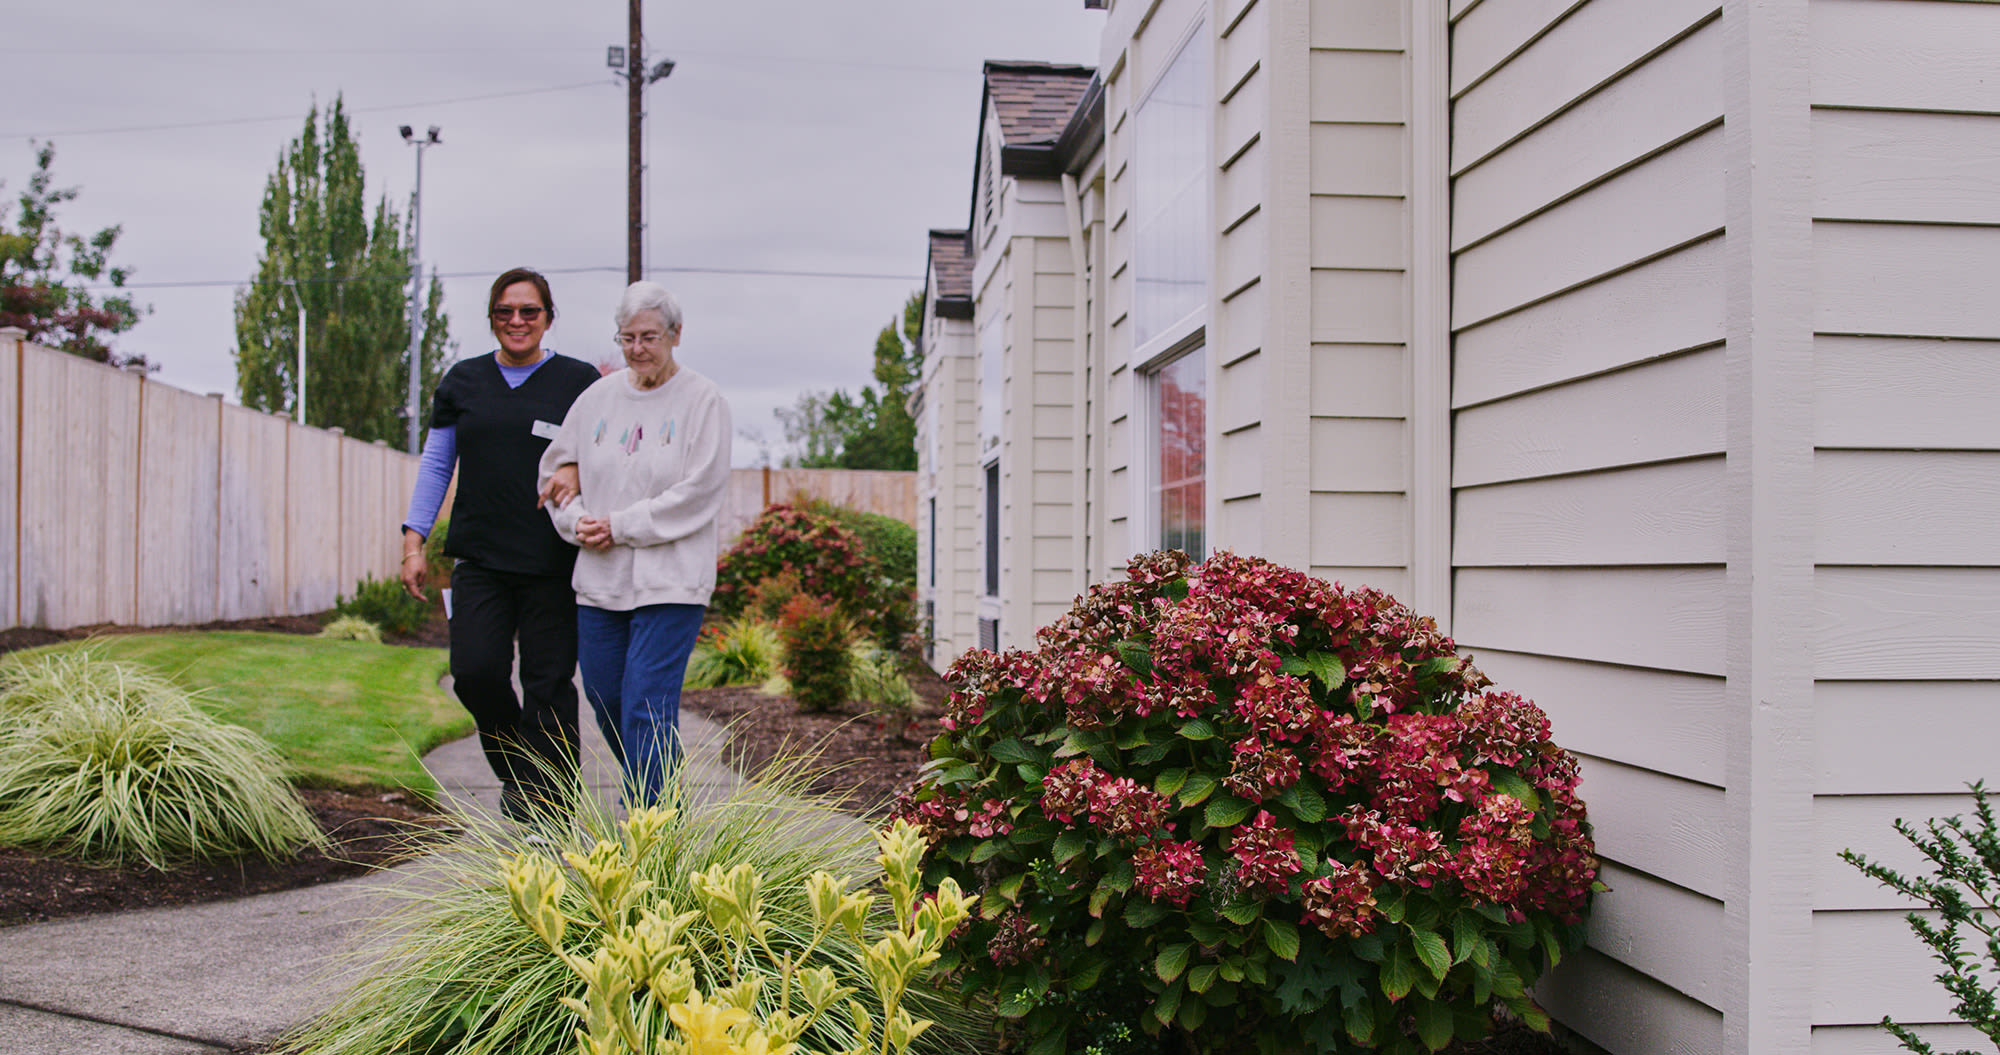 resident and a caretaker walking outside at South Pointe in Everett, Washington